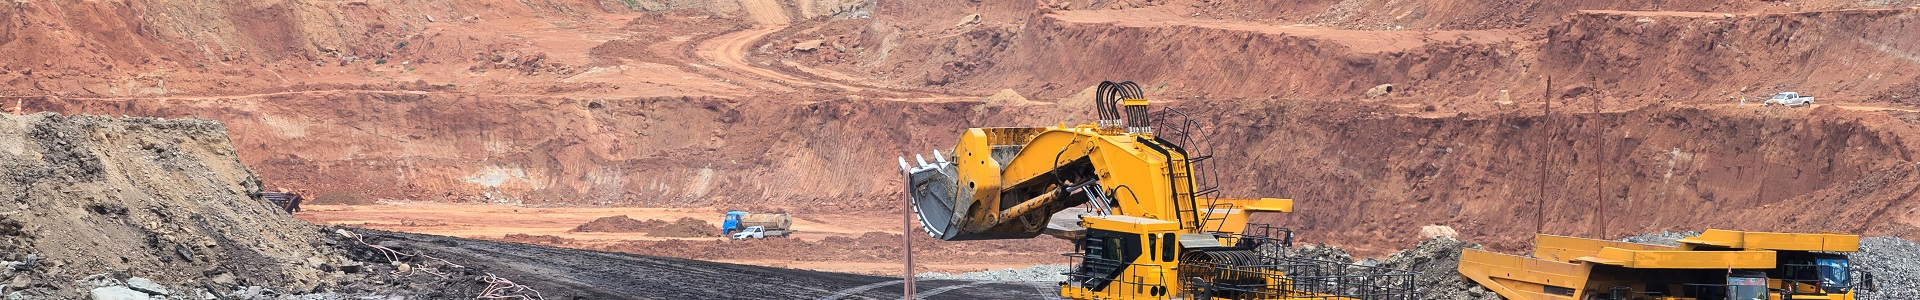 SLP Environmental Mining Impact Assessment Services Thailand Myanmar Cambodia Vietnam Laos Malaysia Indonesia